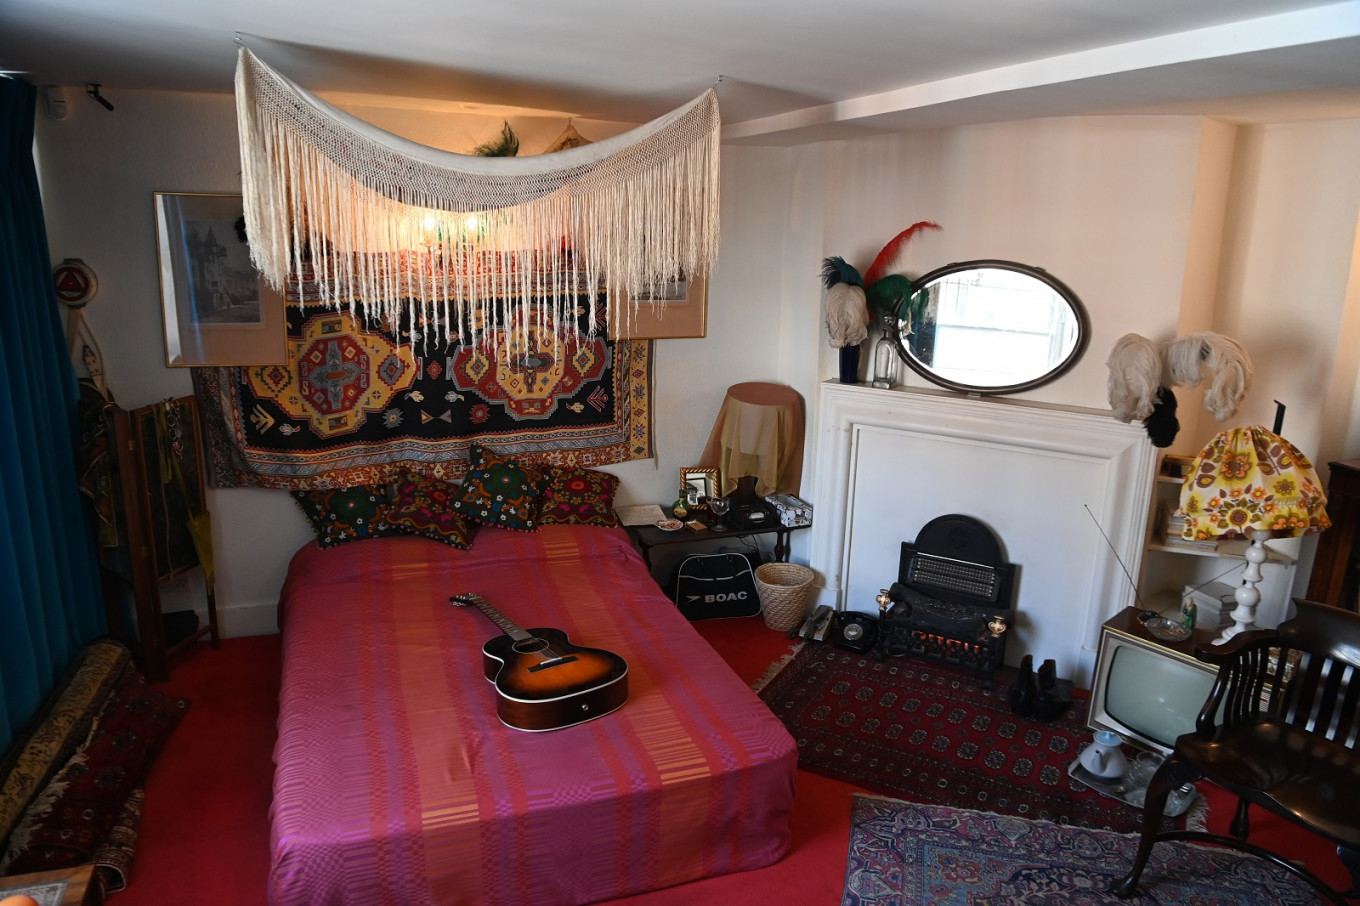 Bohemian chic: Hendrix at home 50 years on